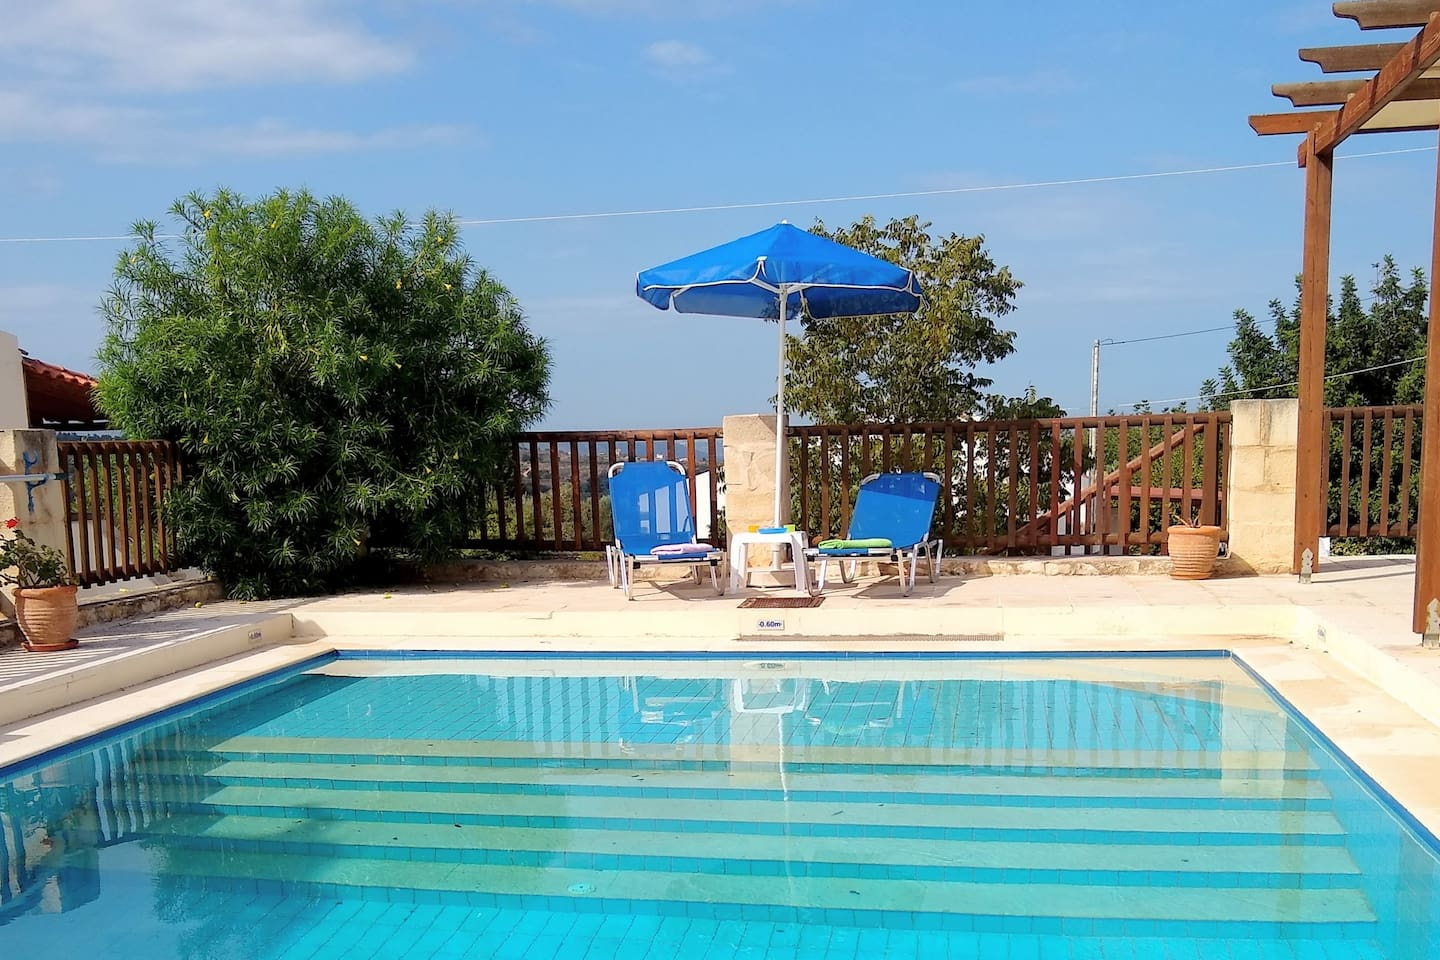 Dolphin Villa Pool. Private, for exclusive use by Dolphin Villa guests.  7mx5m, 1.6m at the deep end, with steps up to the 0.6m shallow end. Plenty of pool loungers provided.